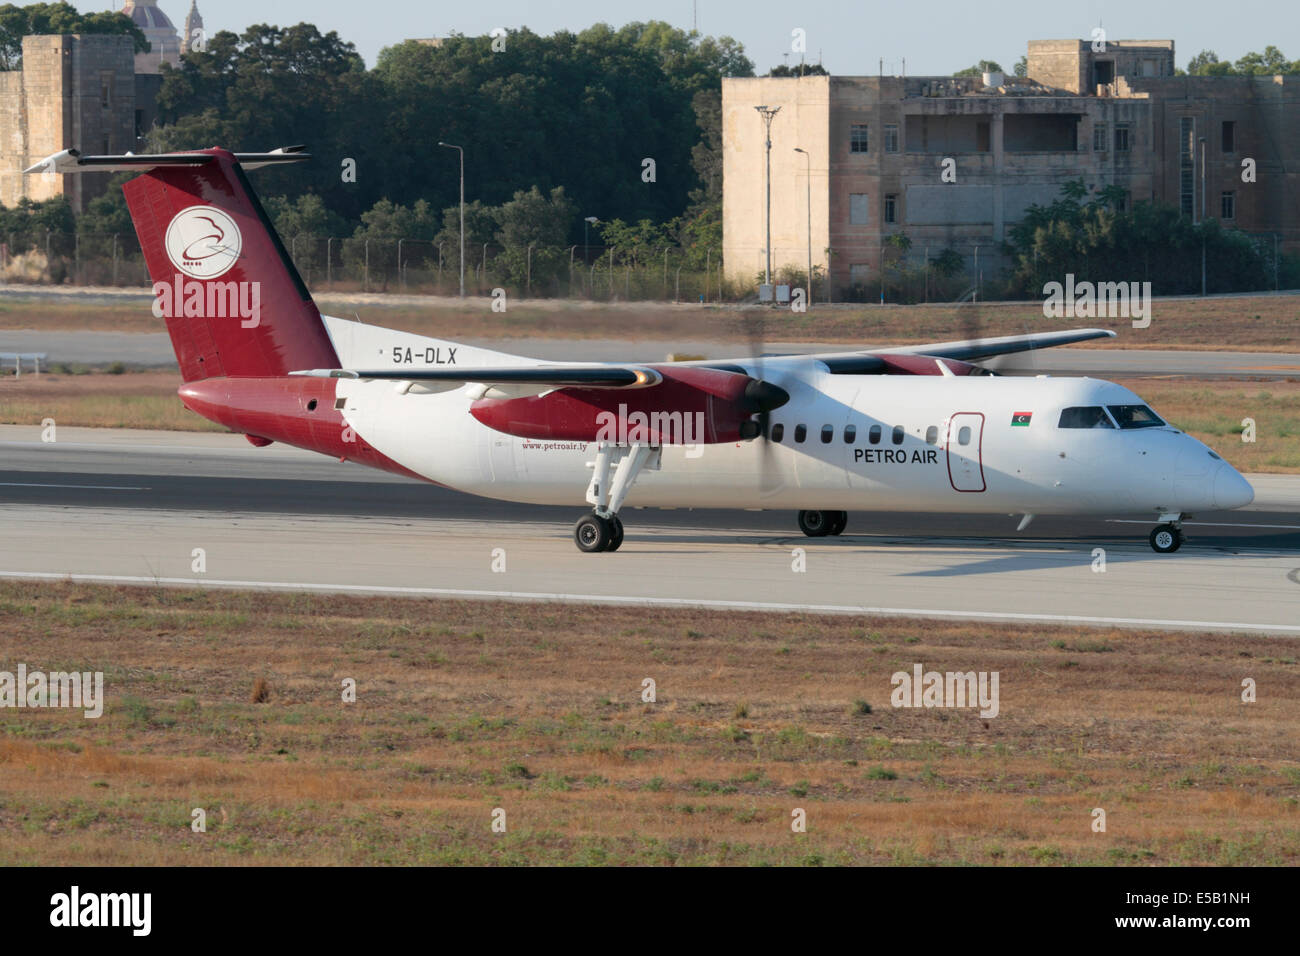 De Havilland Canada Dash 8 turboprop commuter aircraft of the Libyan operator Petro Air on the runway after landing - Stock Image